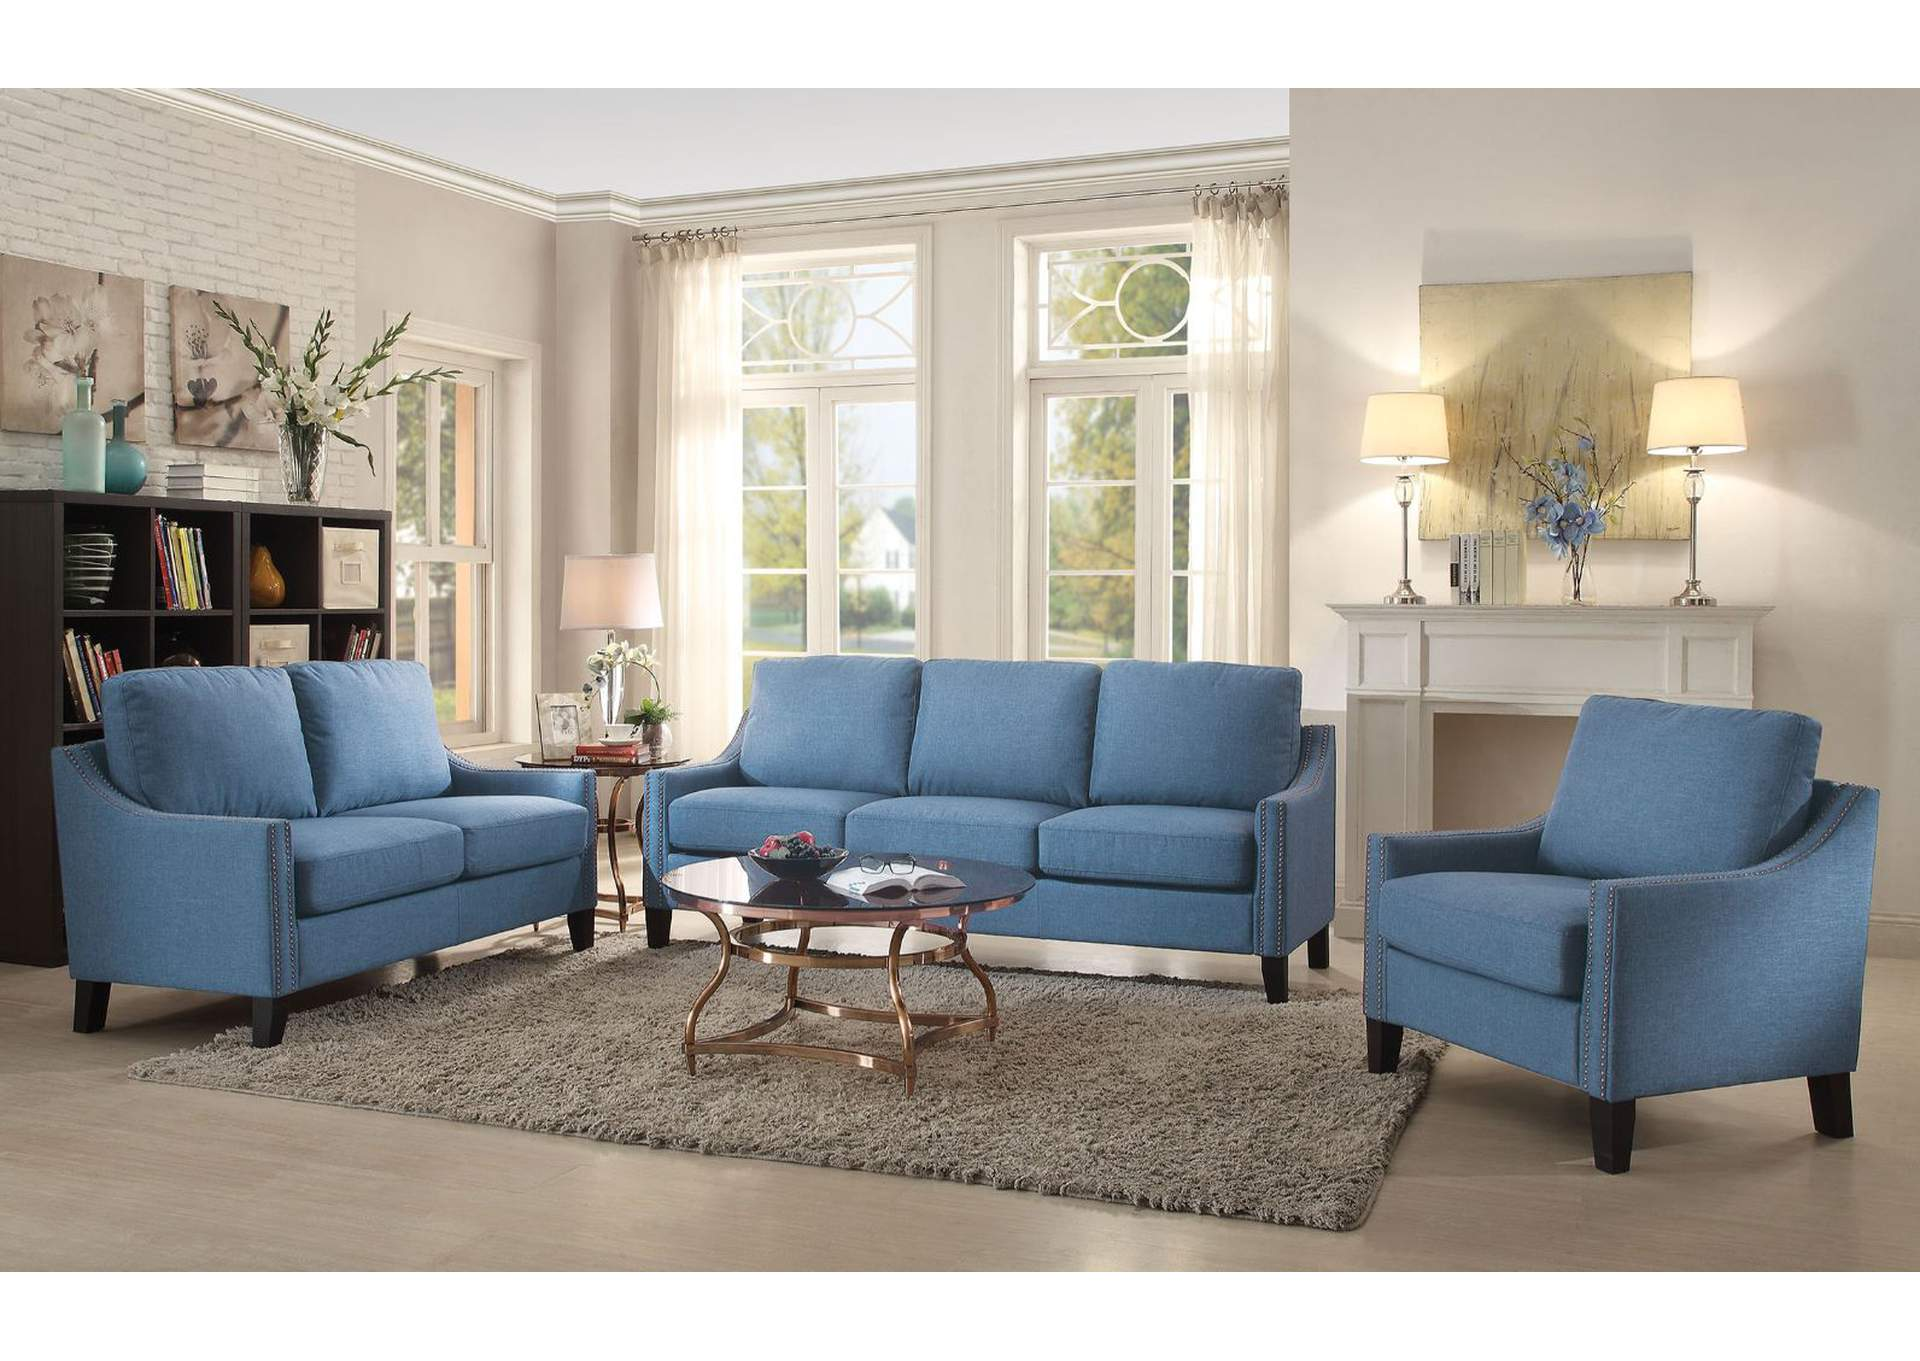 Zapata Blue Linen Sofa,Acme